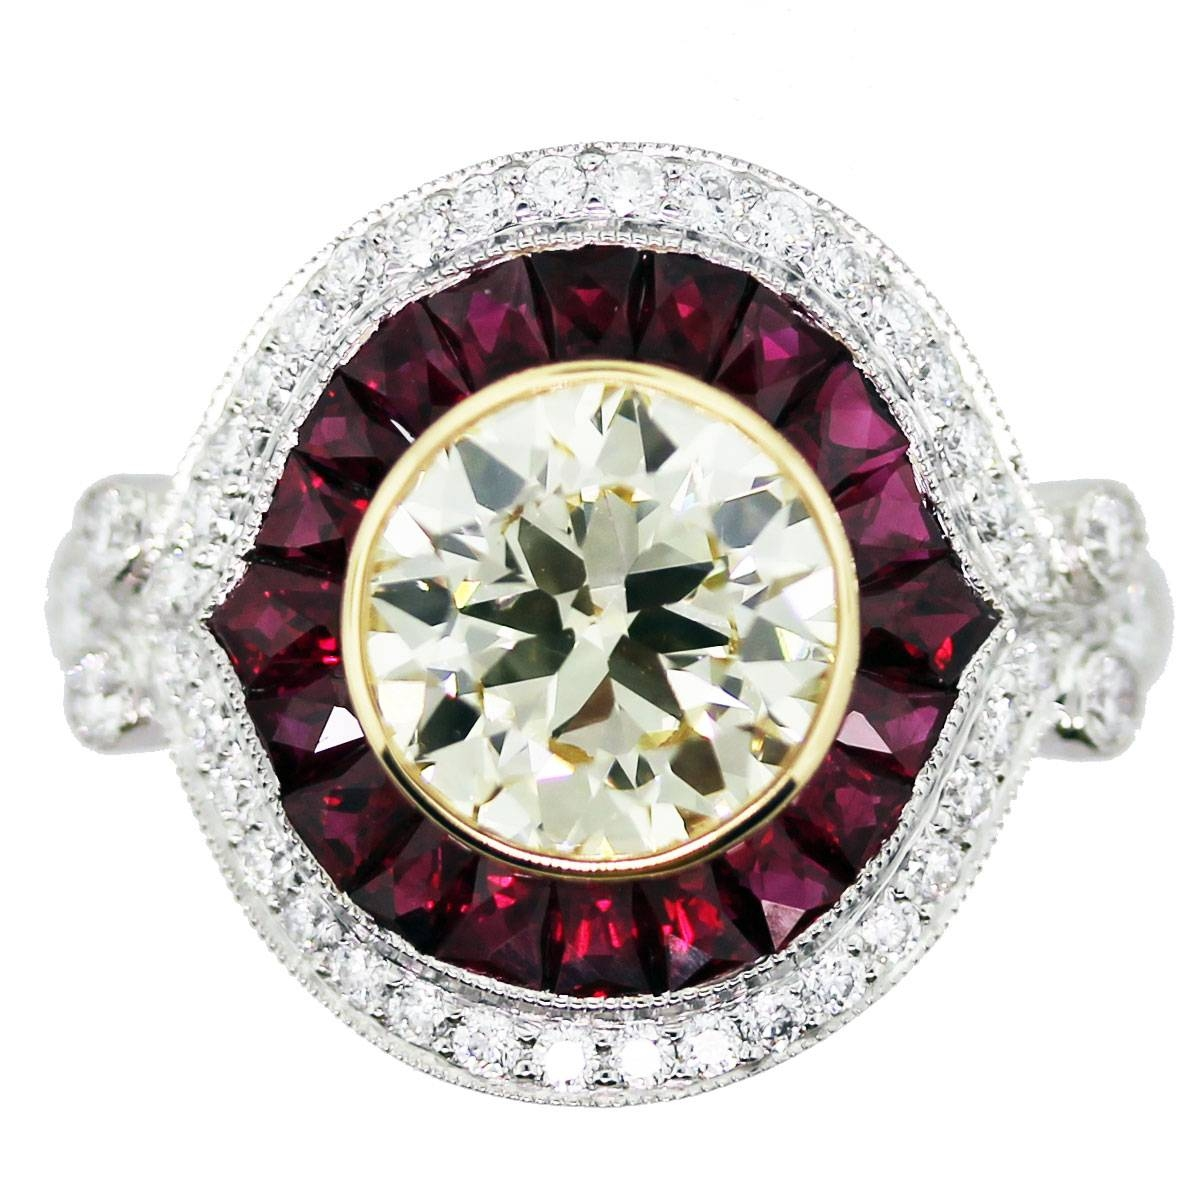 2 Carat Halo Style Engagement Ring Boca Raton With Regard To Diamond And Ruby Engagement Rings (Gallery 12 of 15)